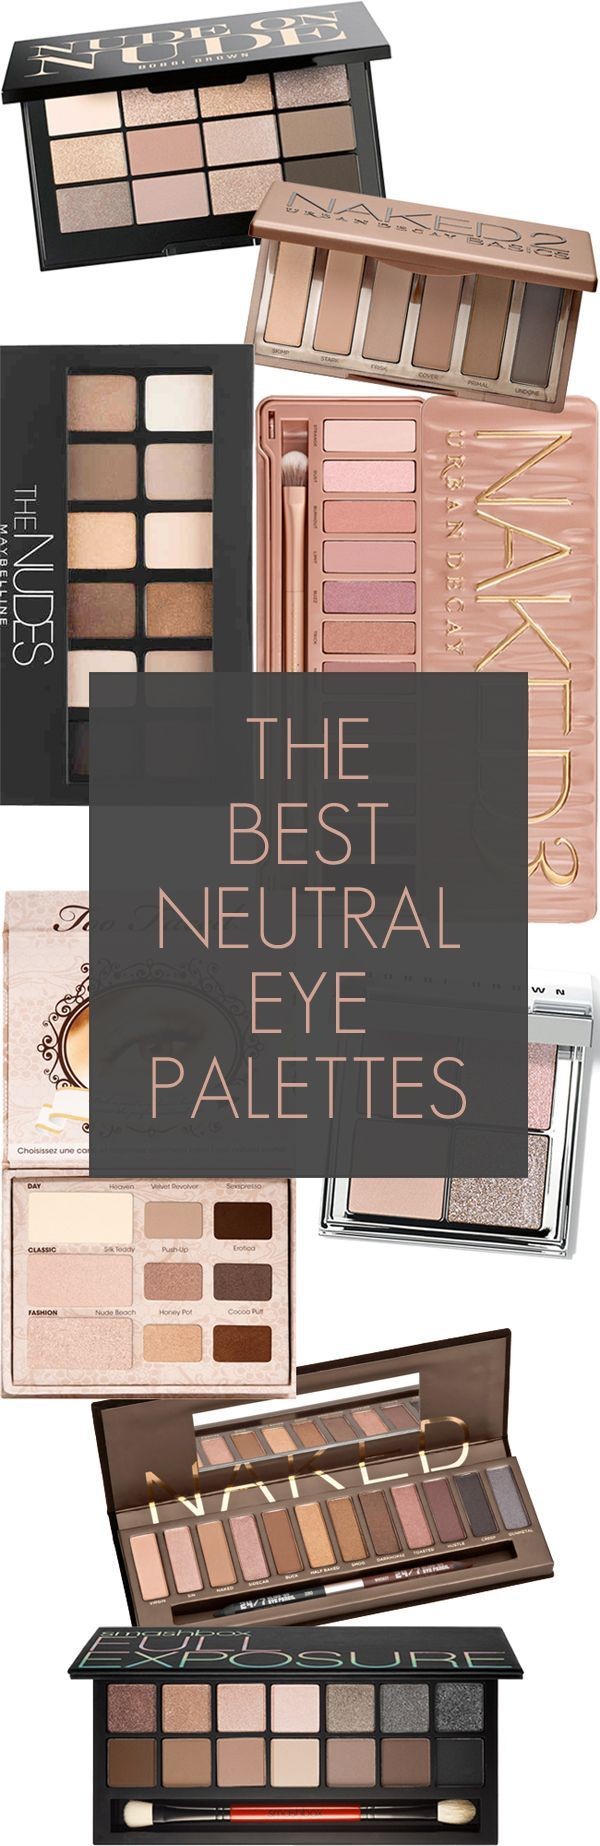 Definitely - Need to get my hands on some of these neutral eye palettes! - Love the look of the Bobbi Brown one!